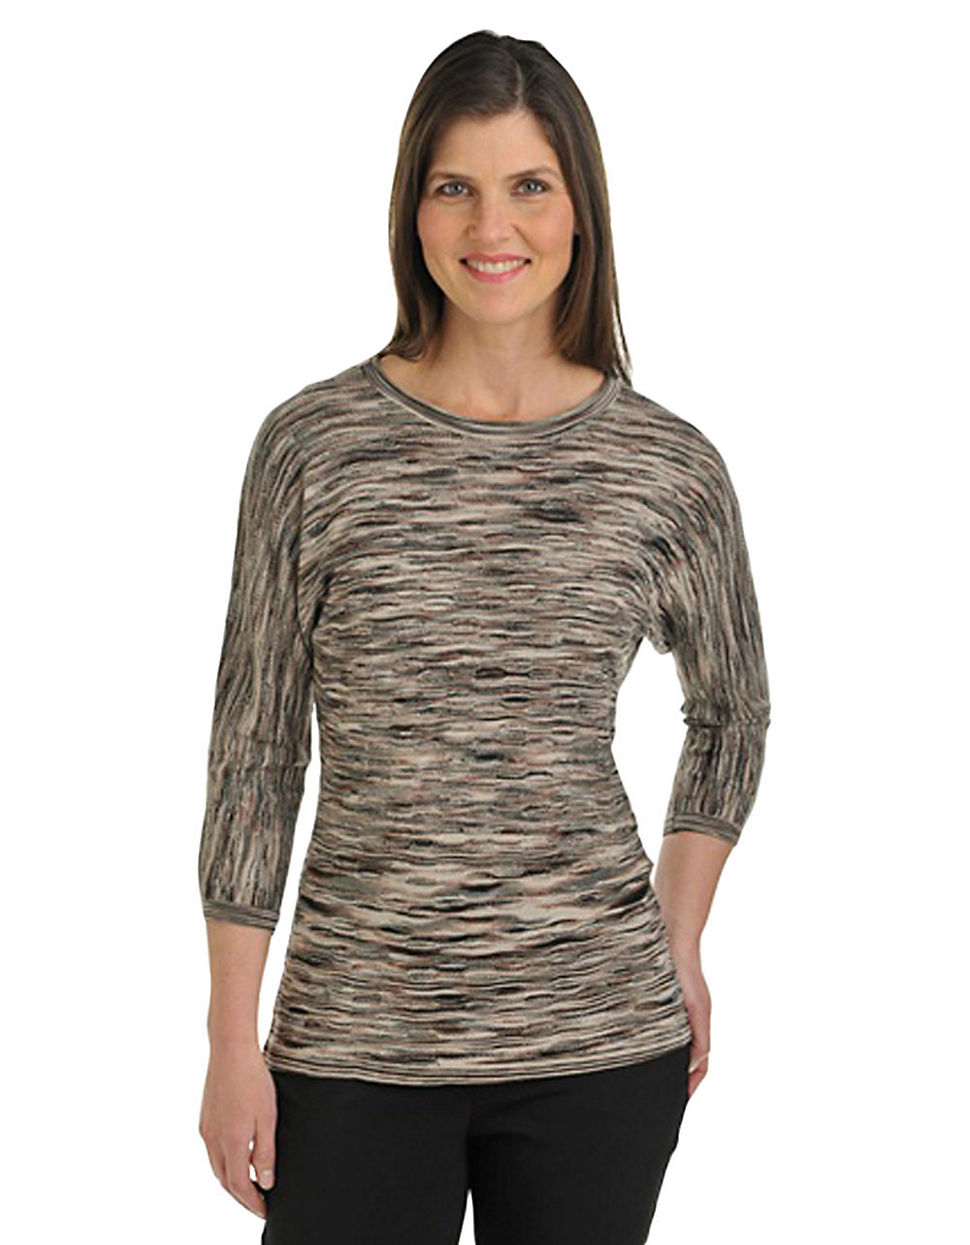 Allison daley Plus Size Dolman Tunic twig 3X